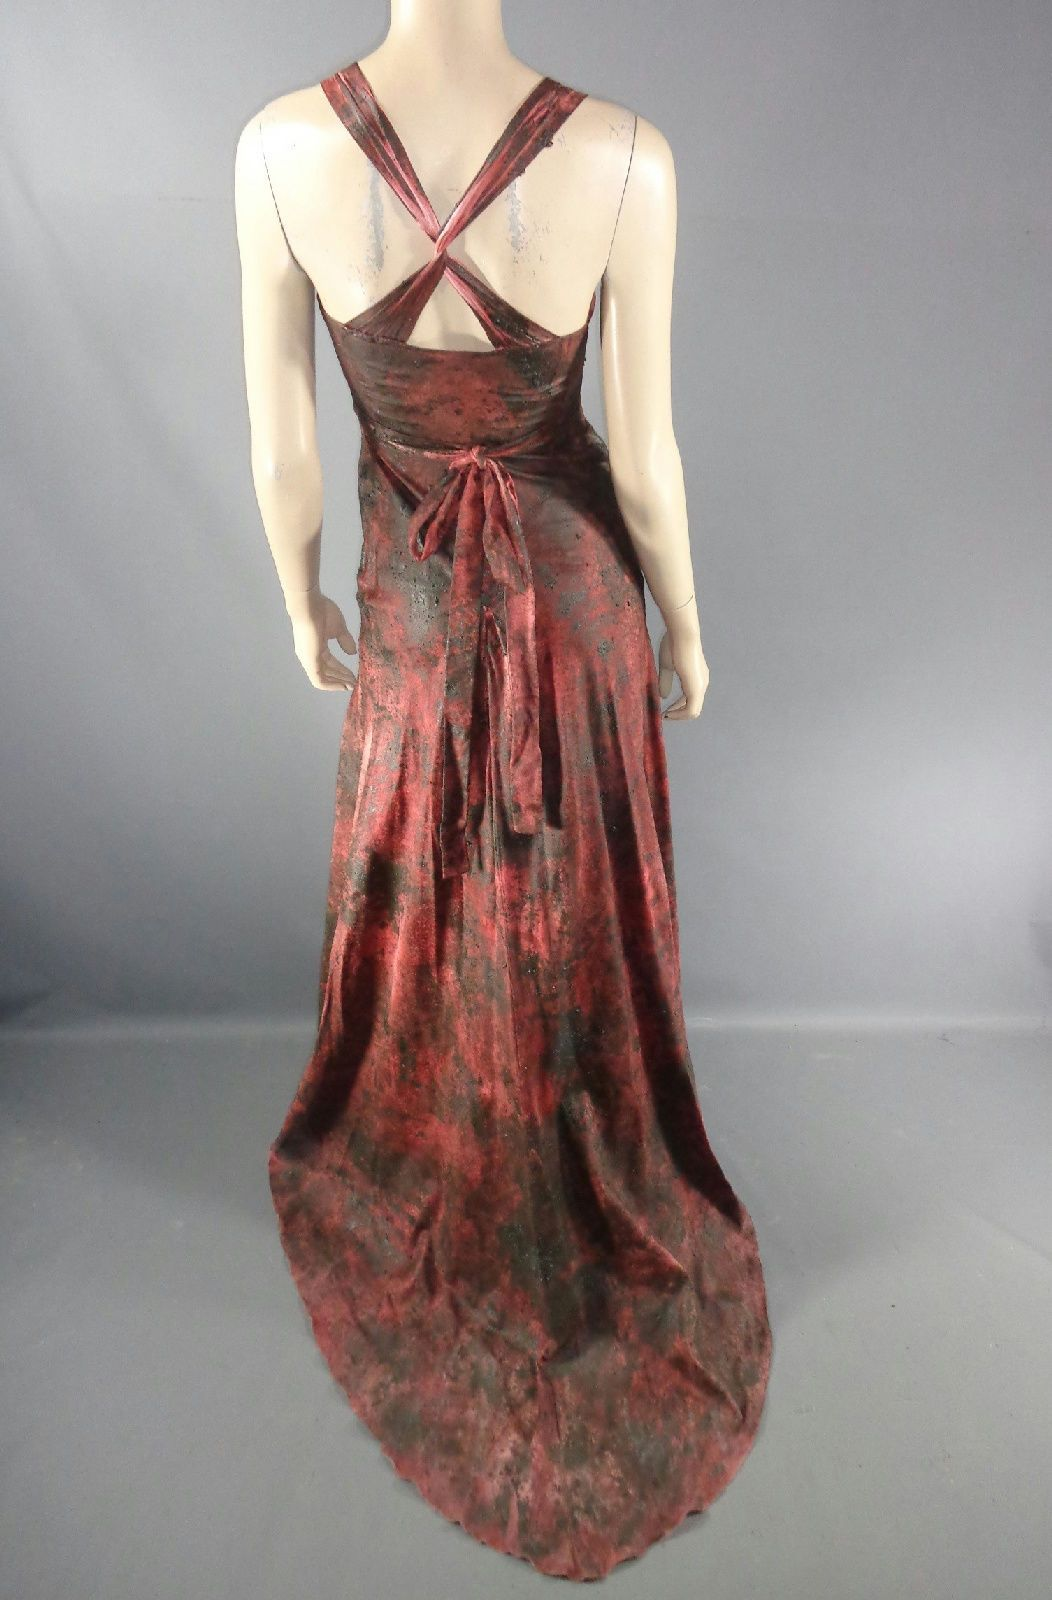 Carrie White Prom Dress Dirty Back Horror Movies